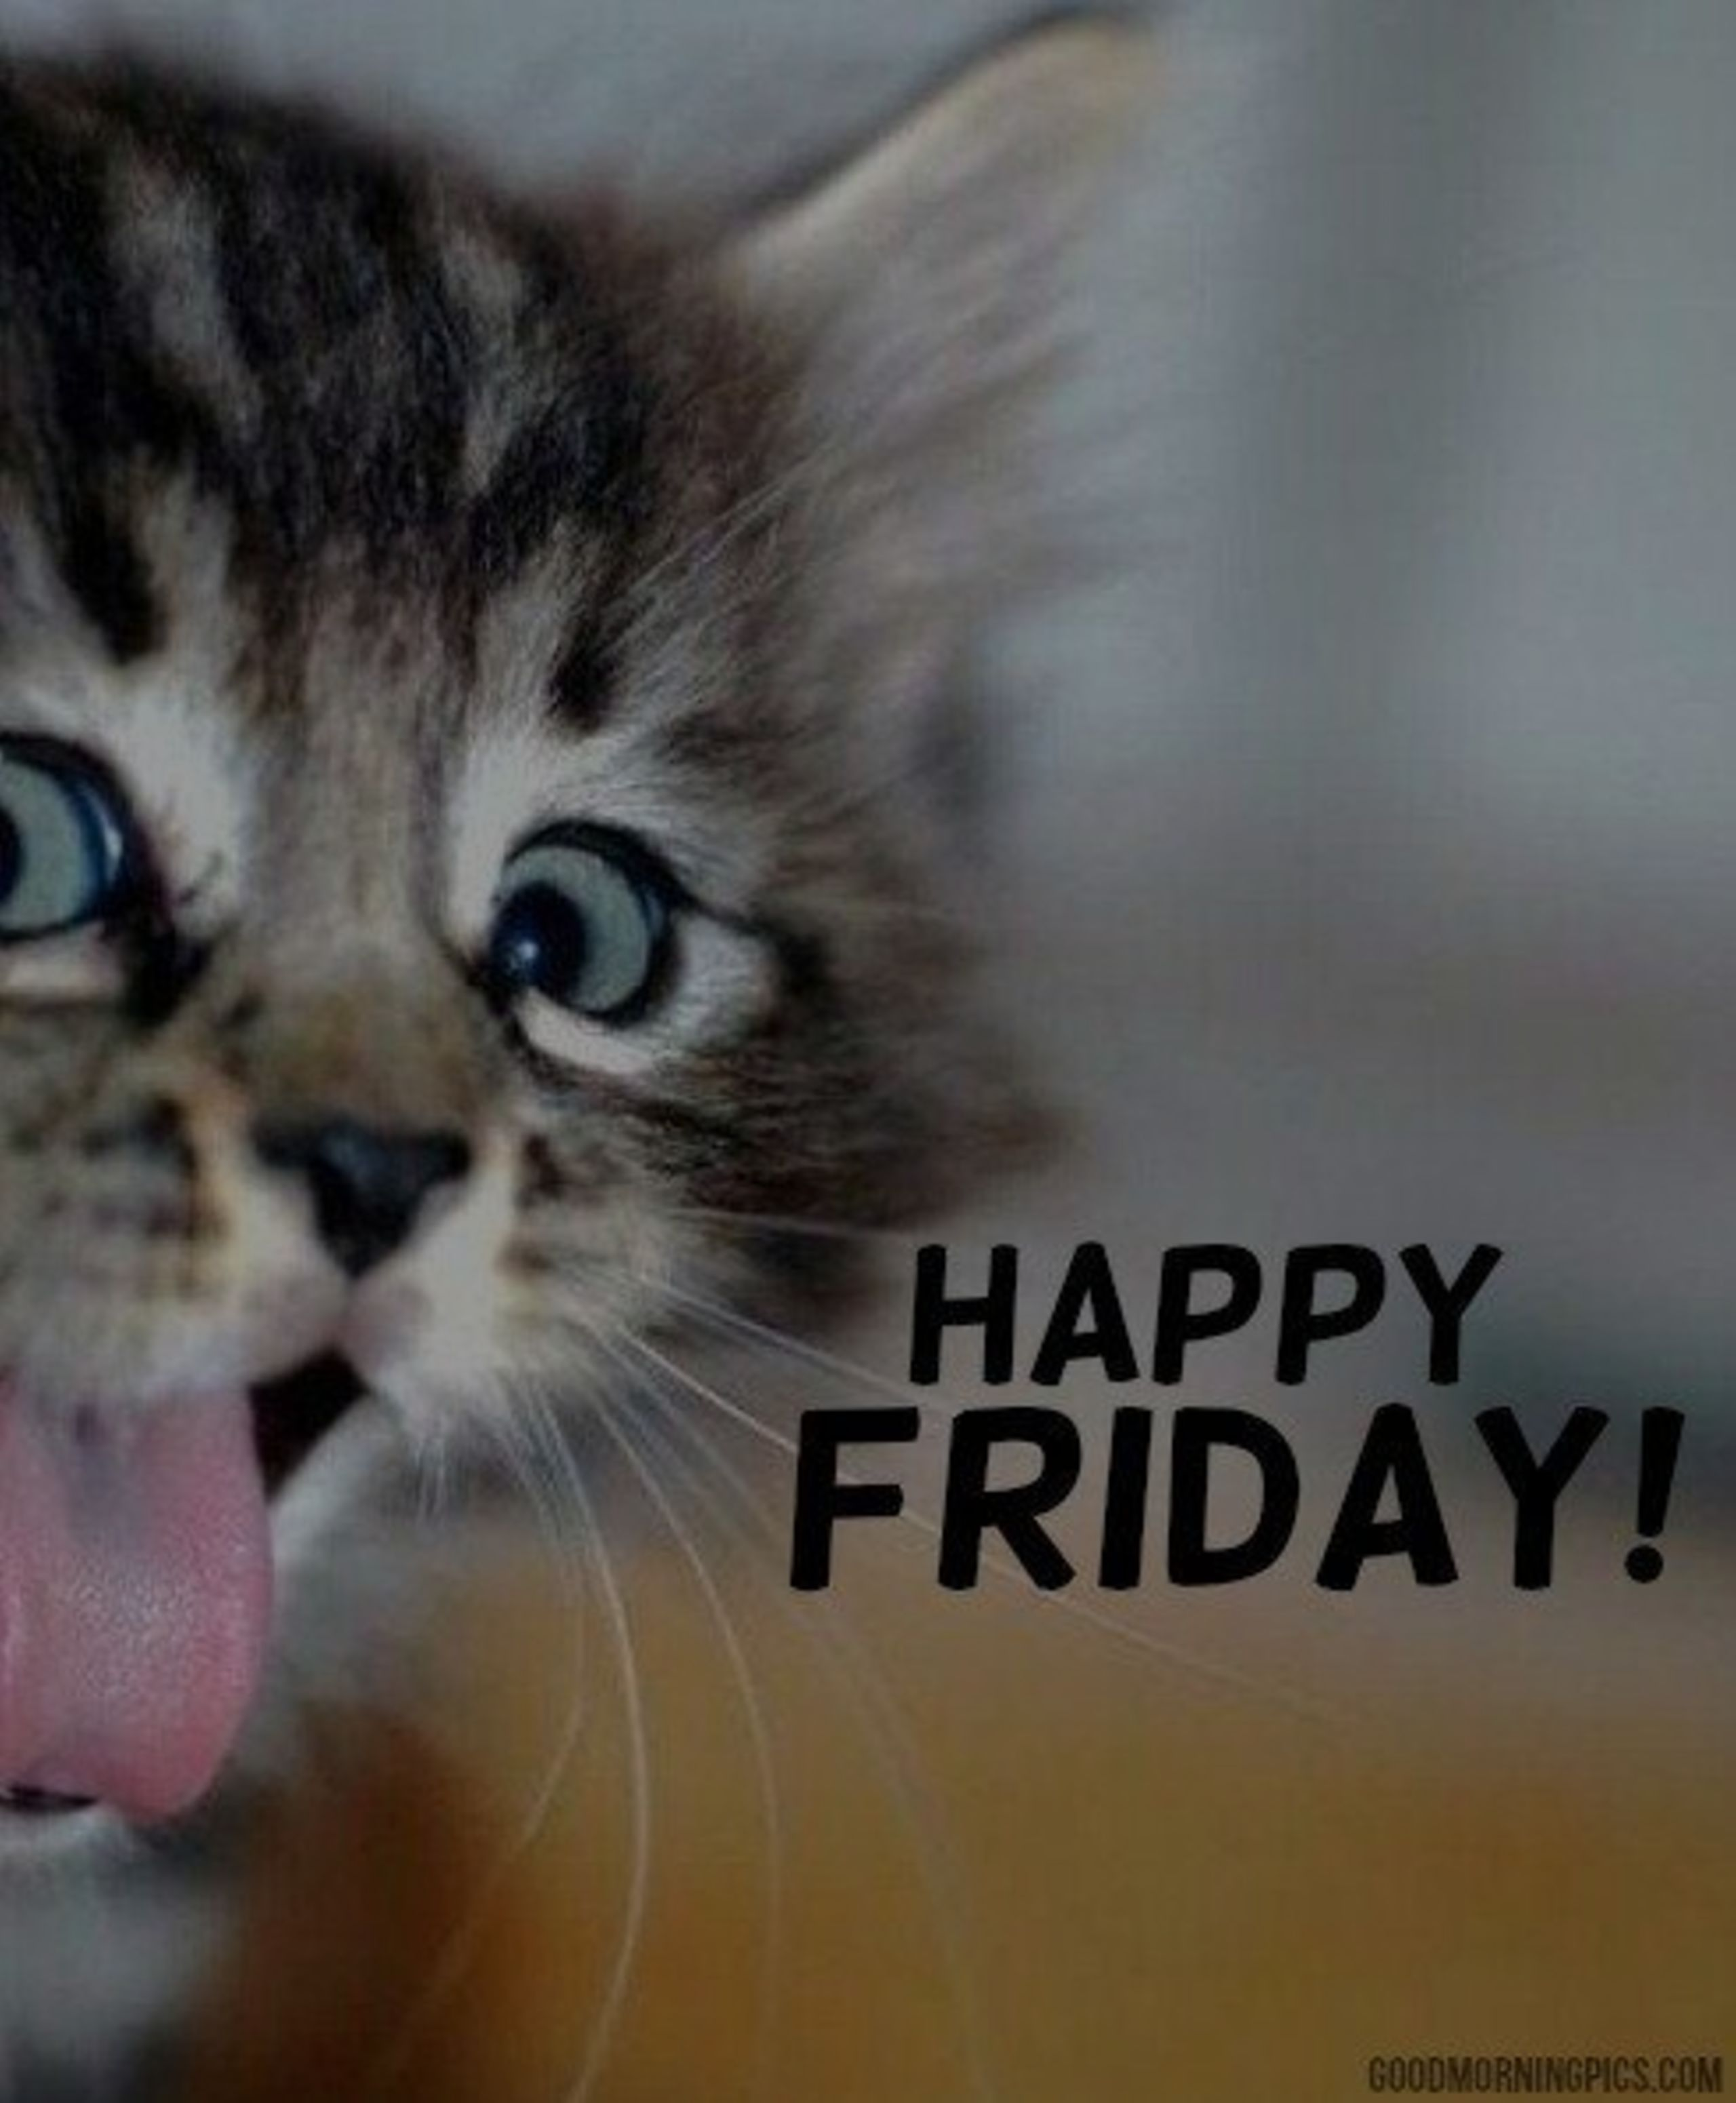 Happy Friday From the Tammy Mrotek Team!